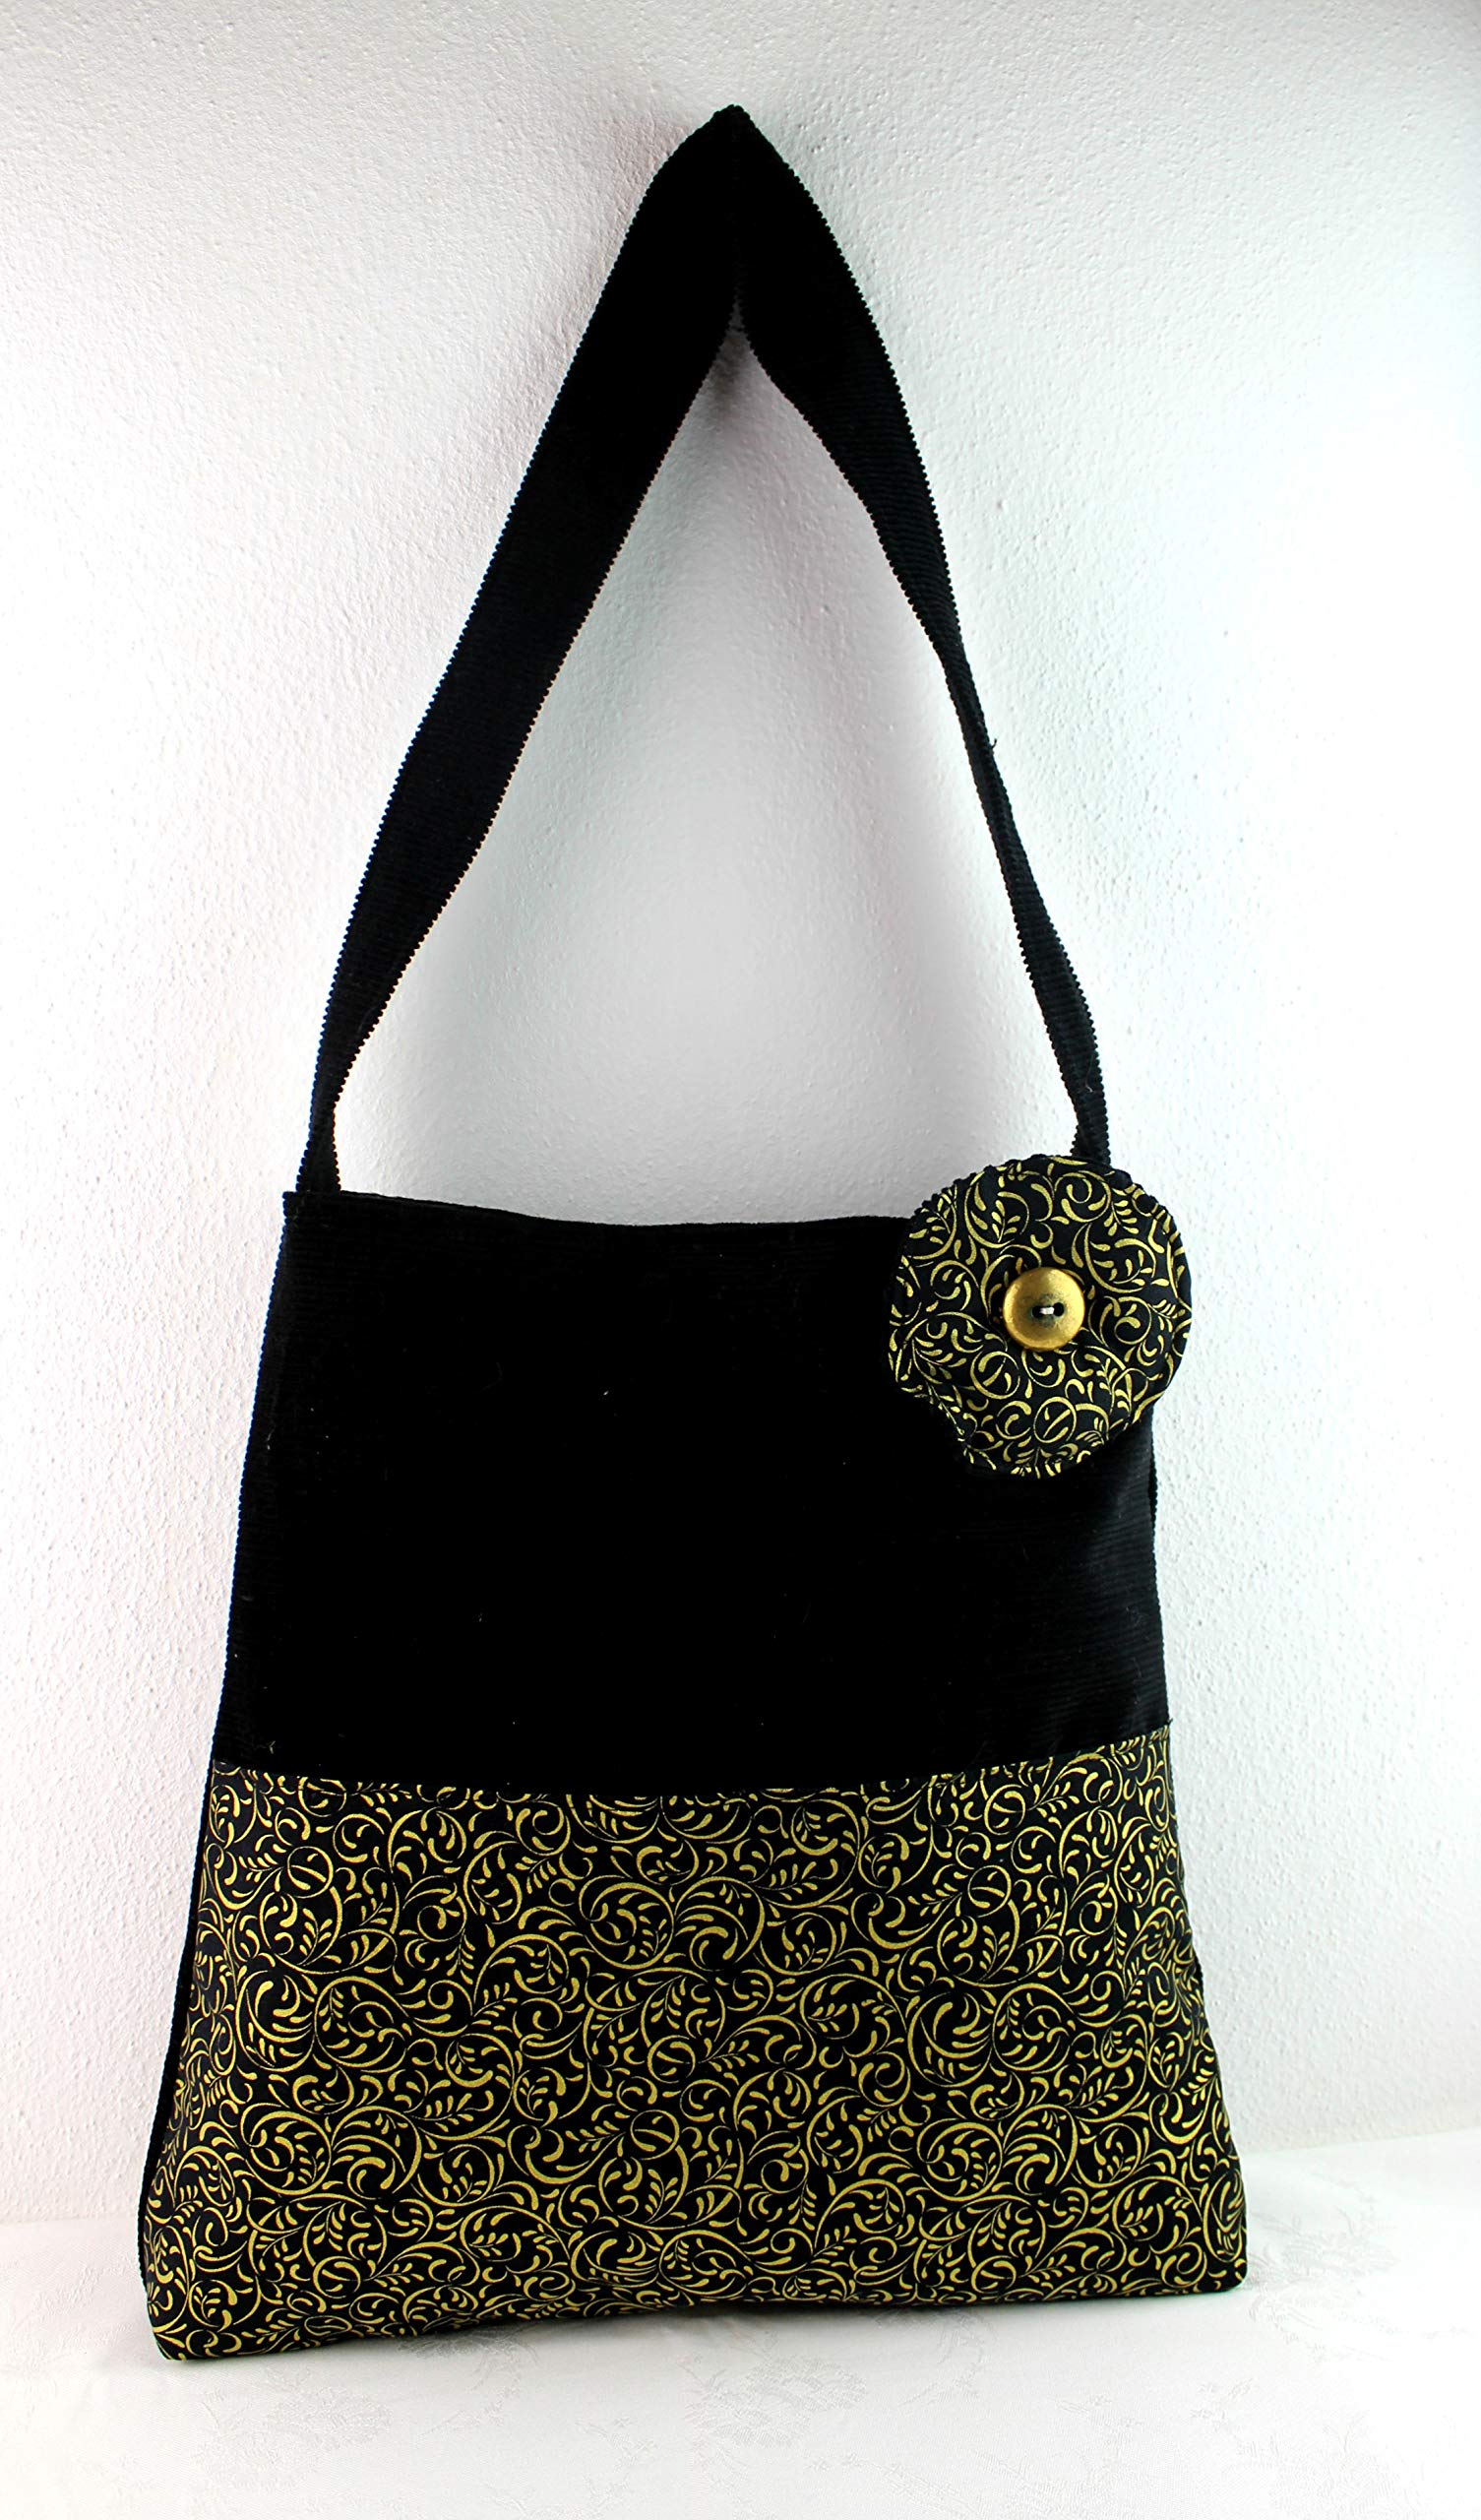 Shoulder bag in Velvet and Batik (Cotton) artistic - brown - black - handmade-bags